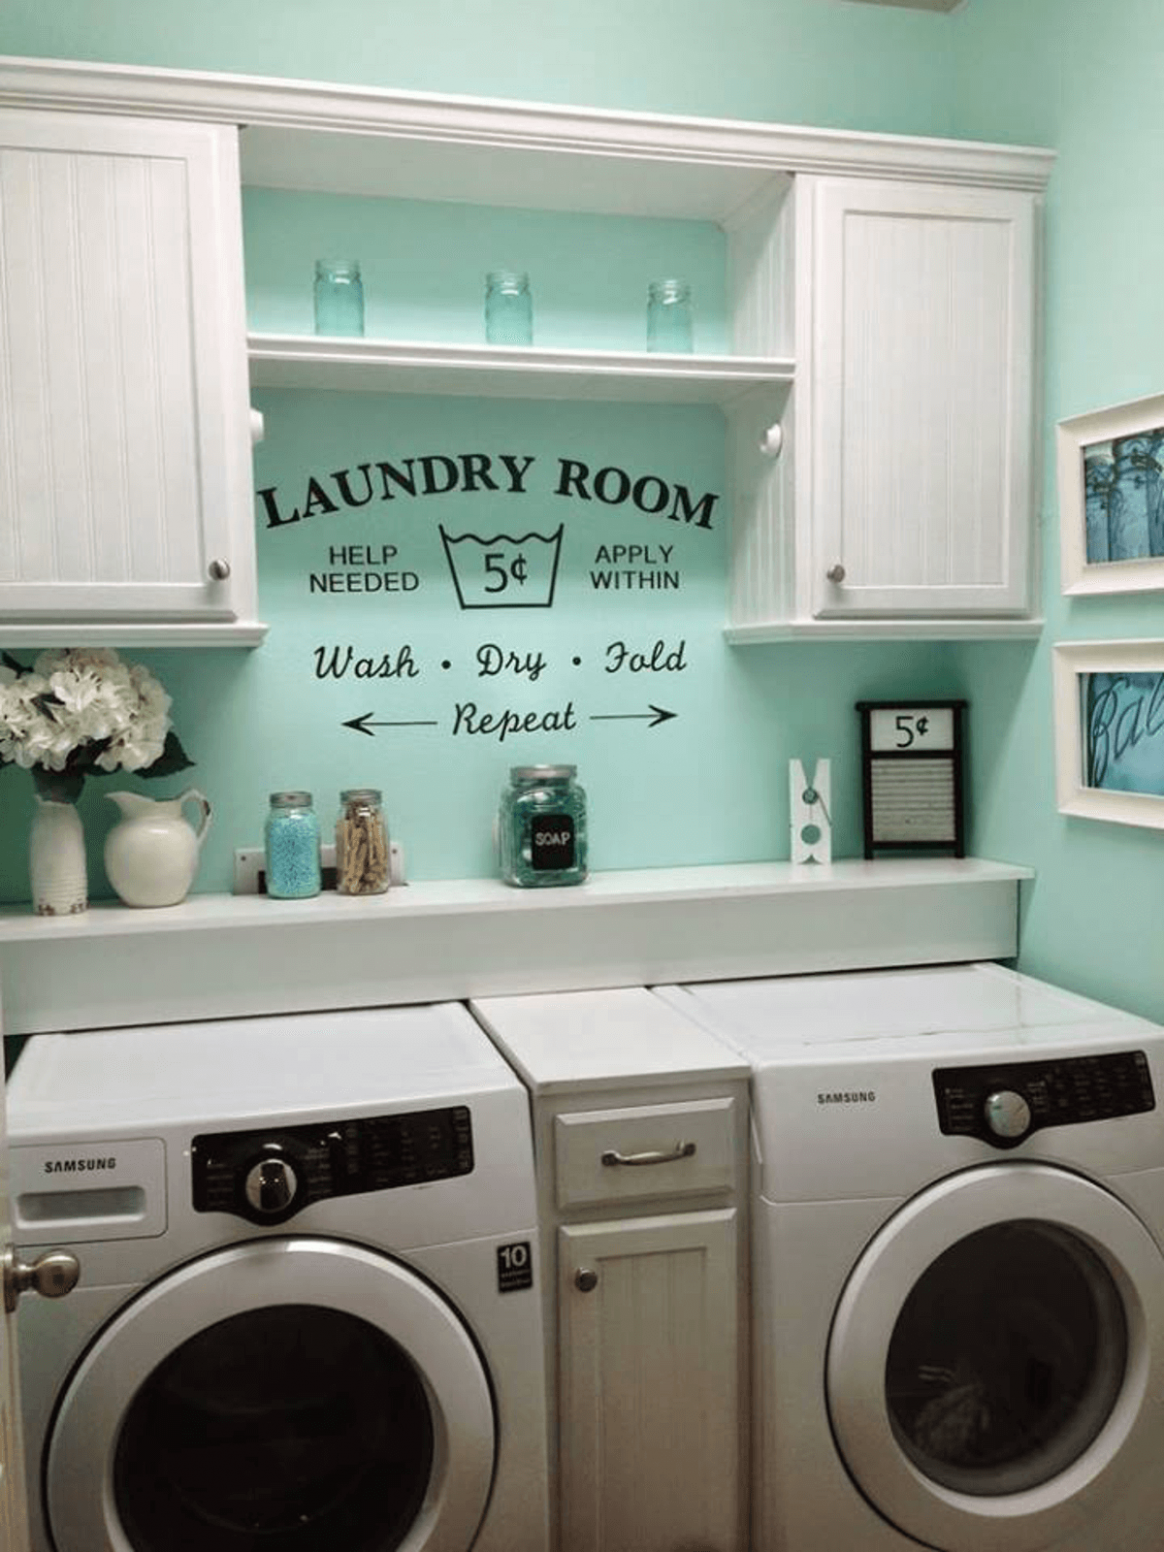 11 Best Small Laundry Room Design Ideas for 11 - small laundry room ideas top loading washer